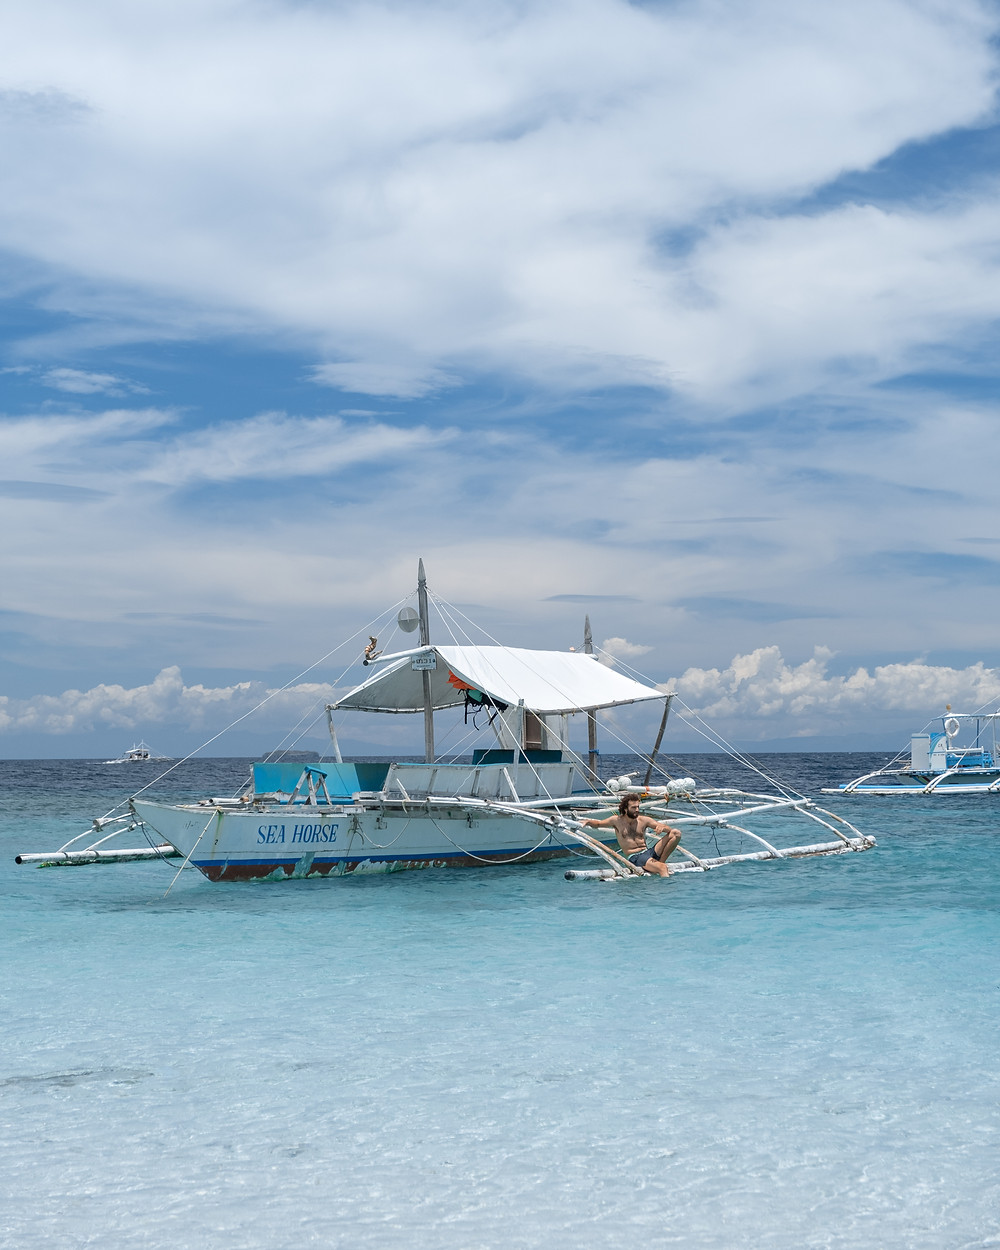 Sitting on a boat on Moalboal's white sand beach in Cebu island